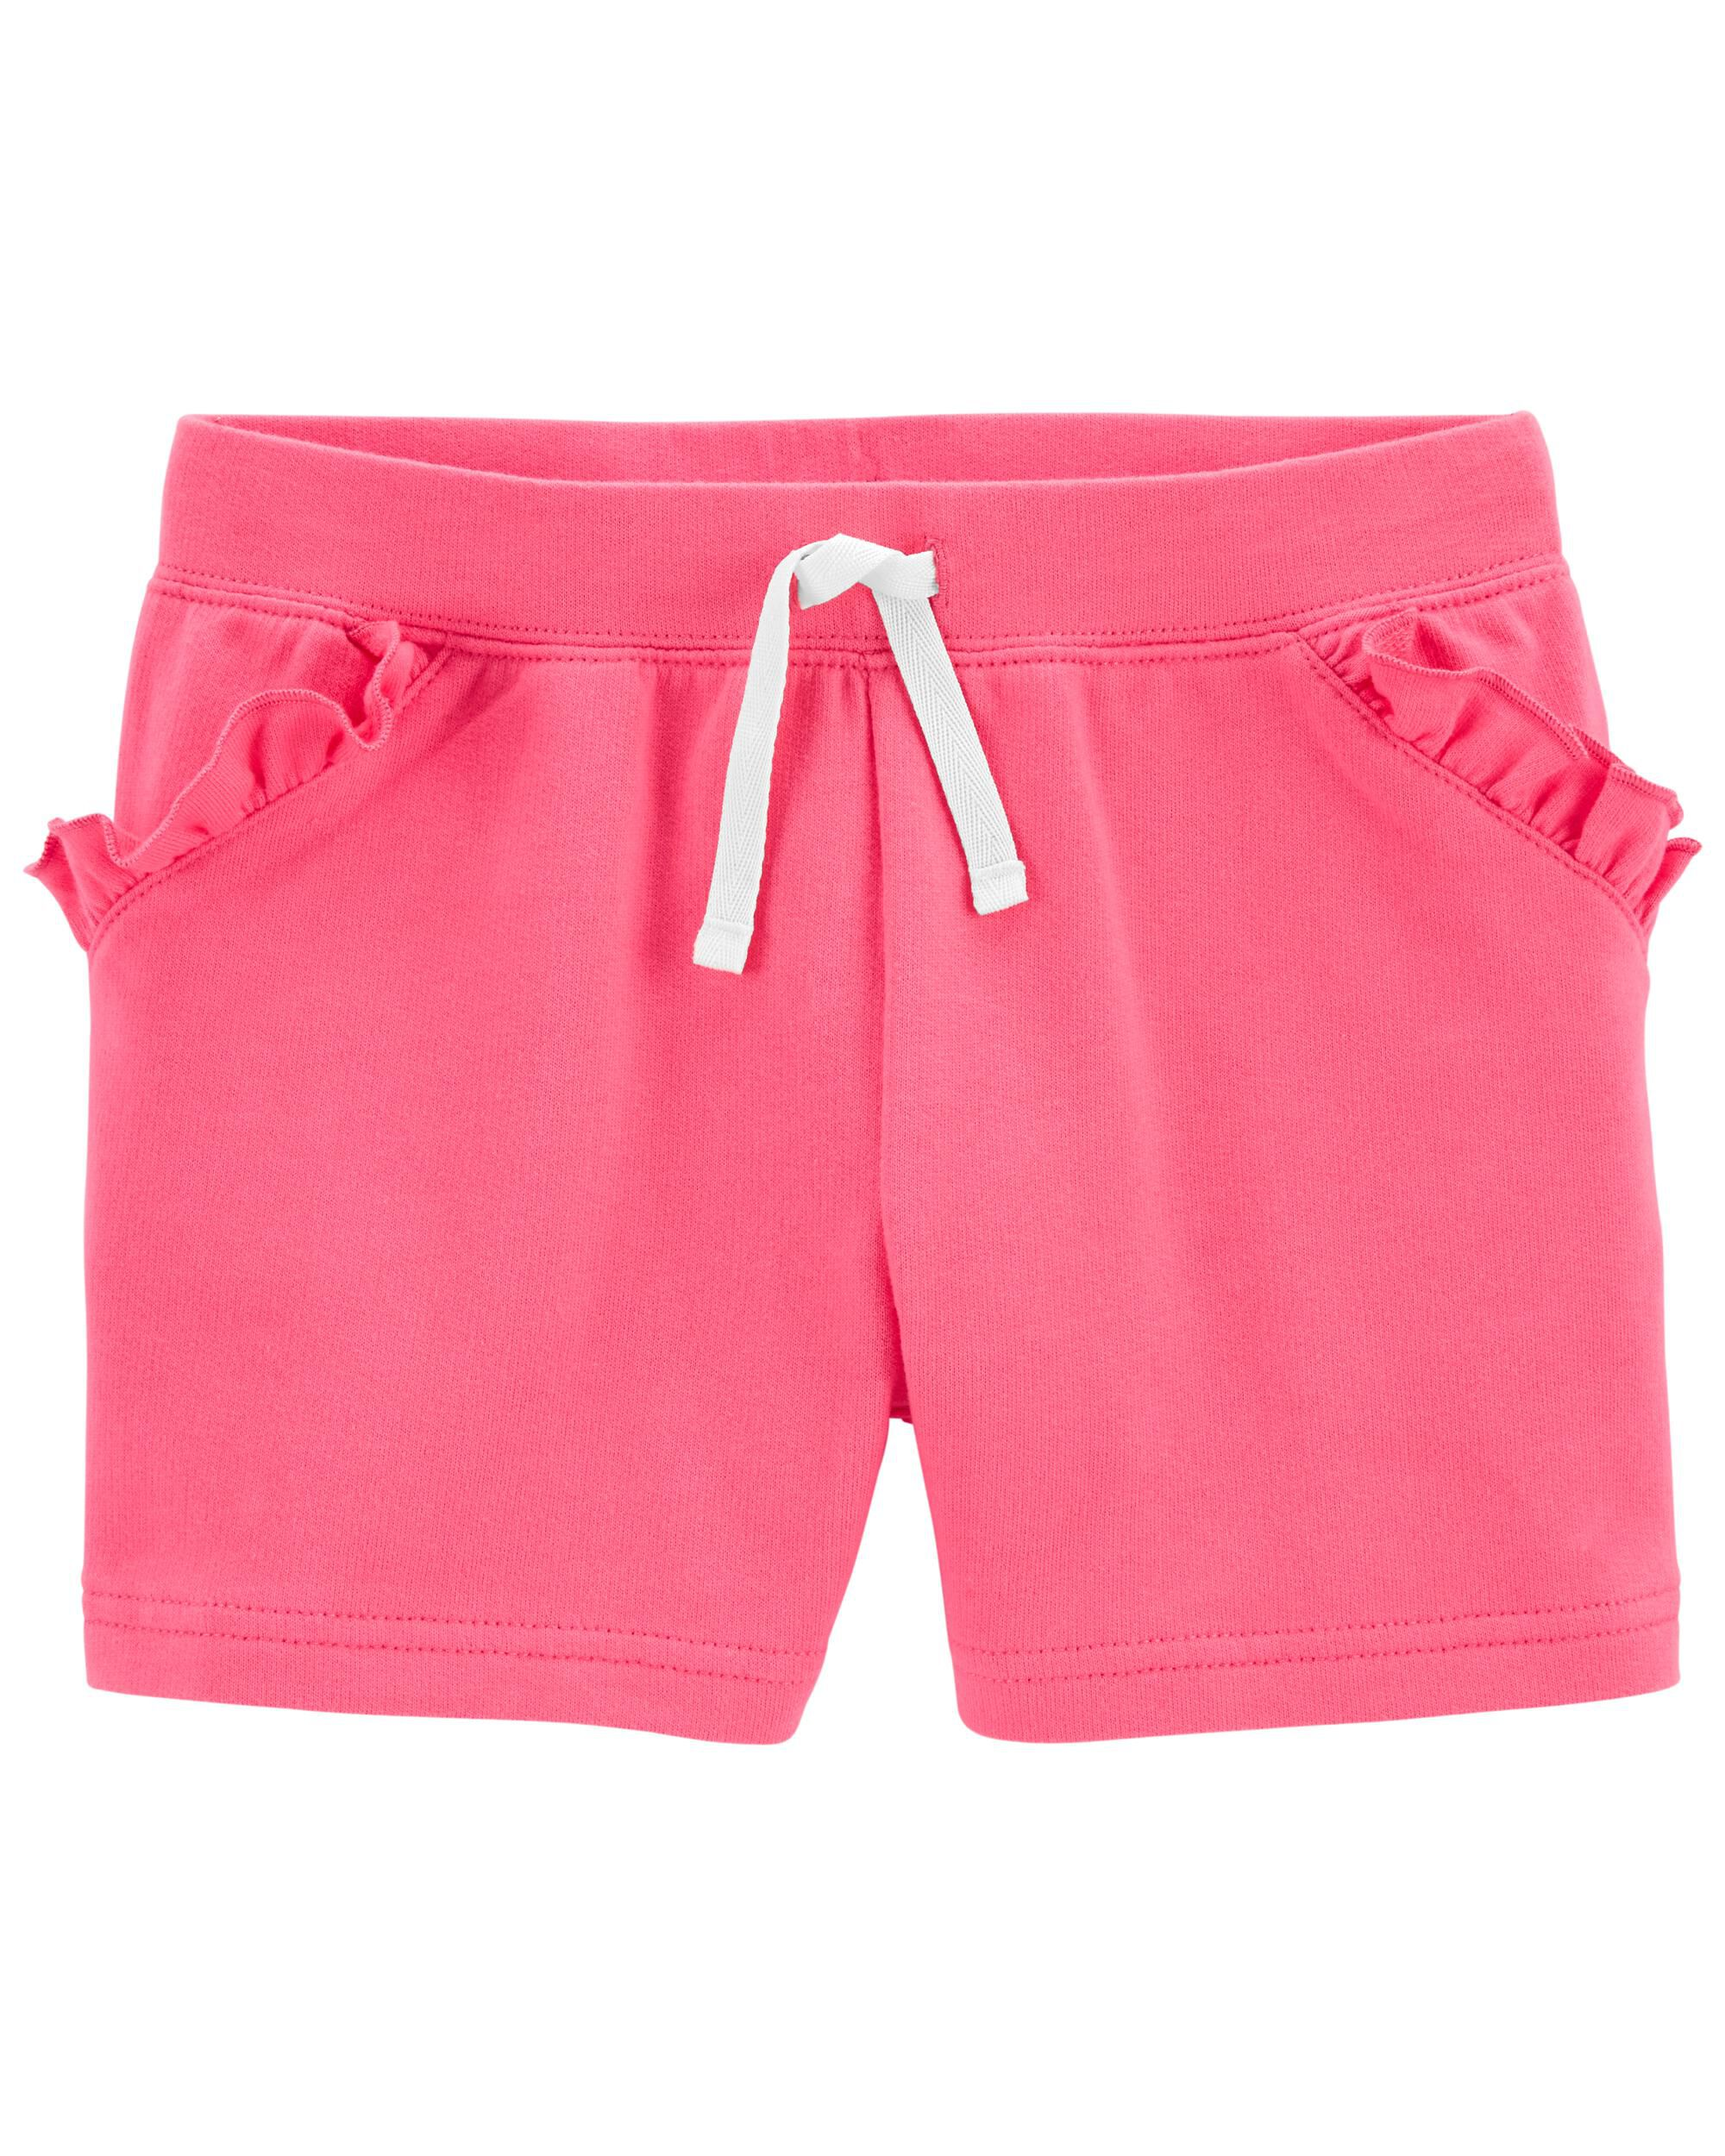 *DOORBUSTER* Ruffle Pull-On French Terry Shorts